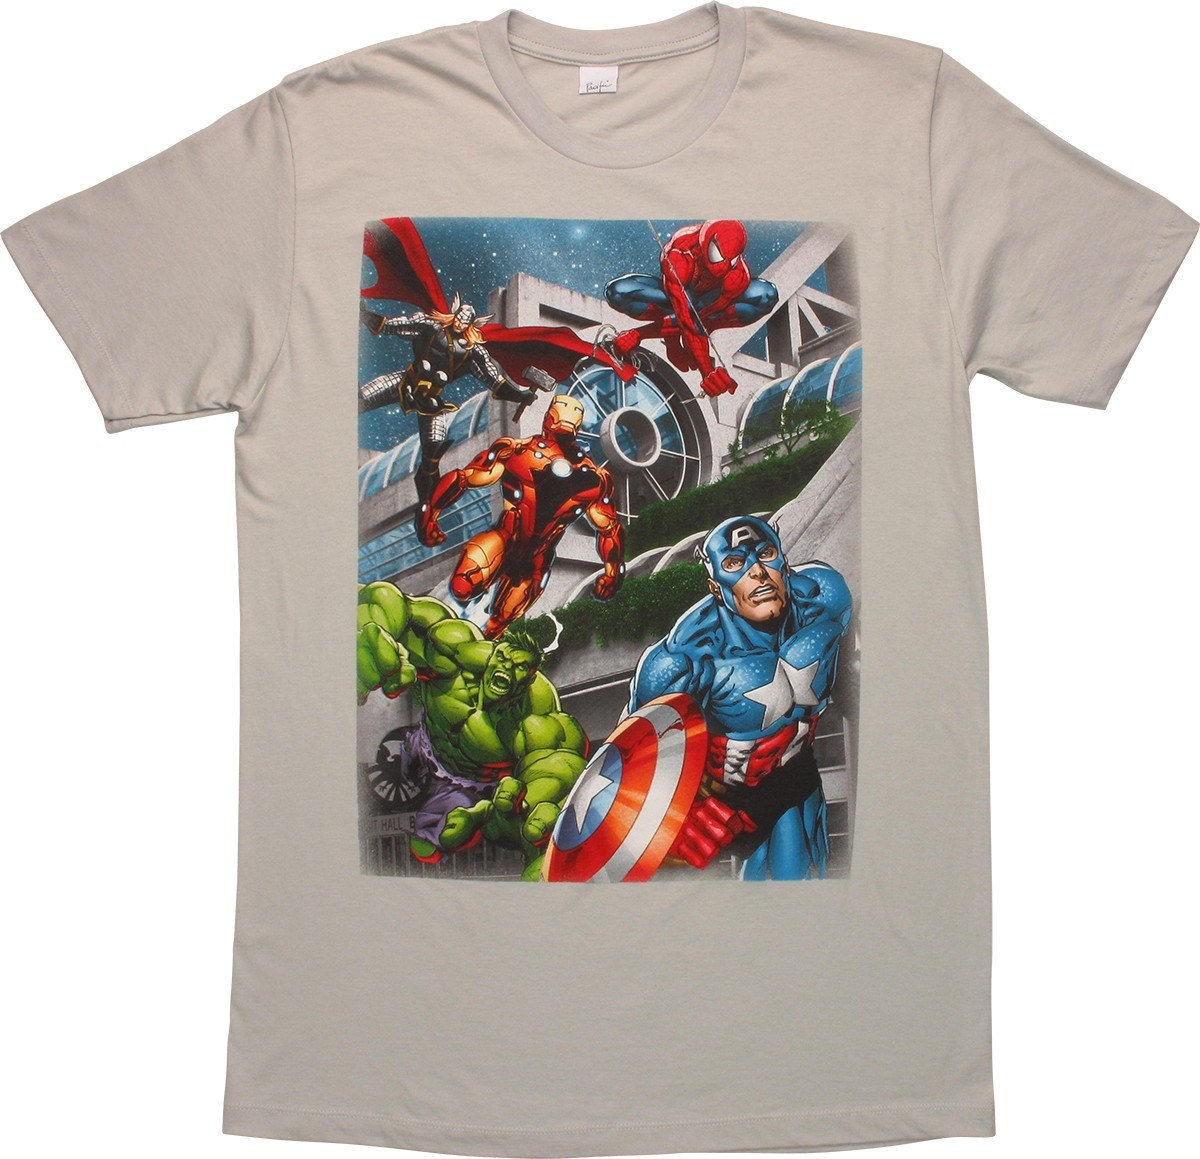 Sdcc 2014 exclusives the toyark news for Shirt printing san diego